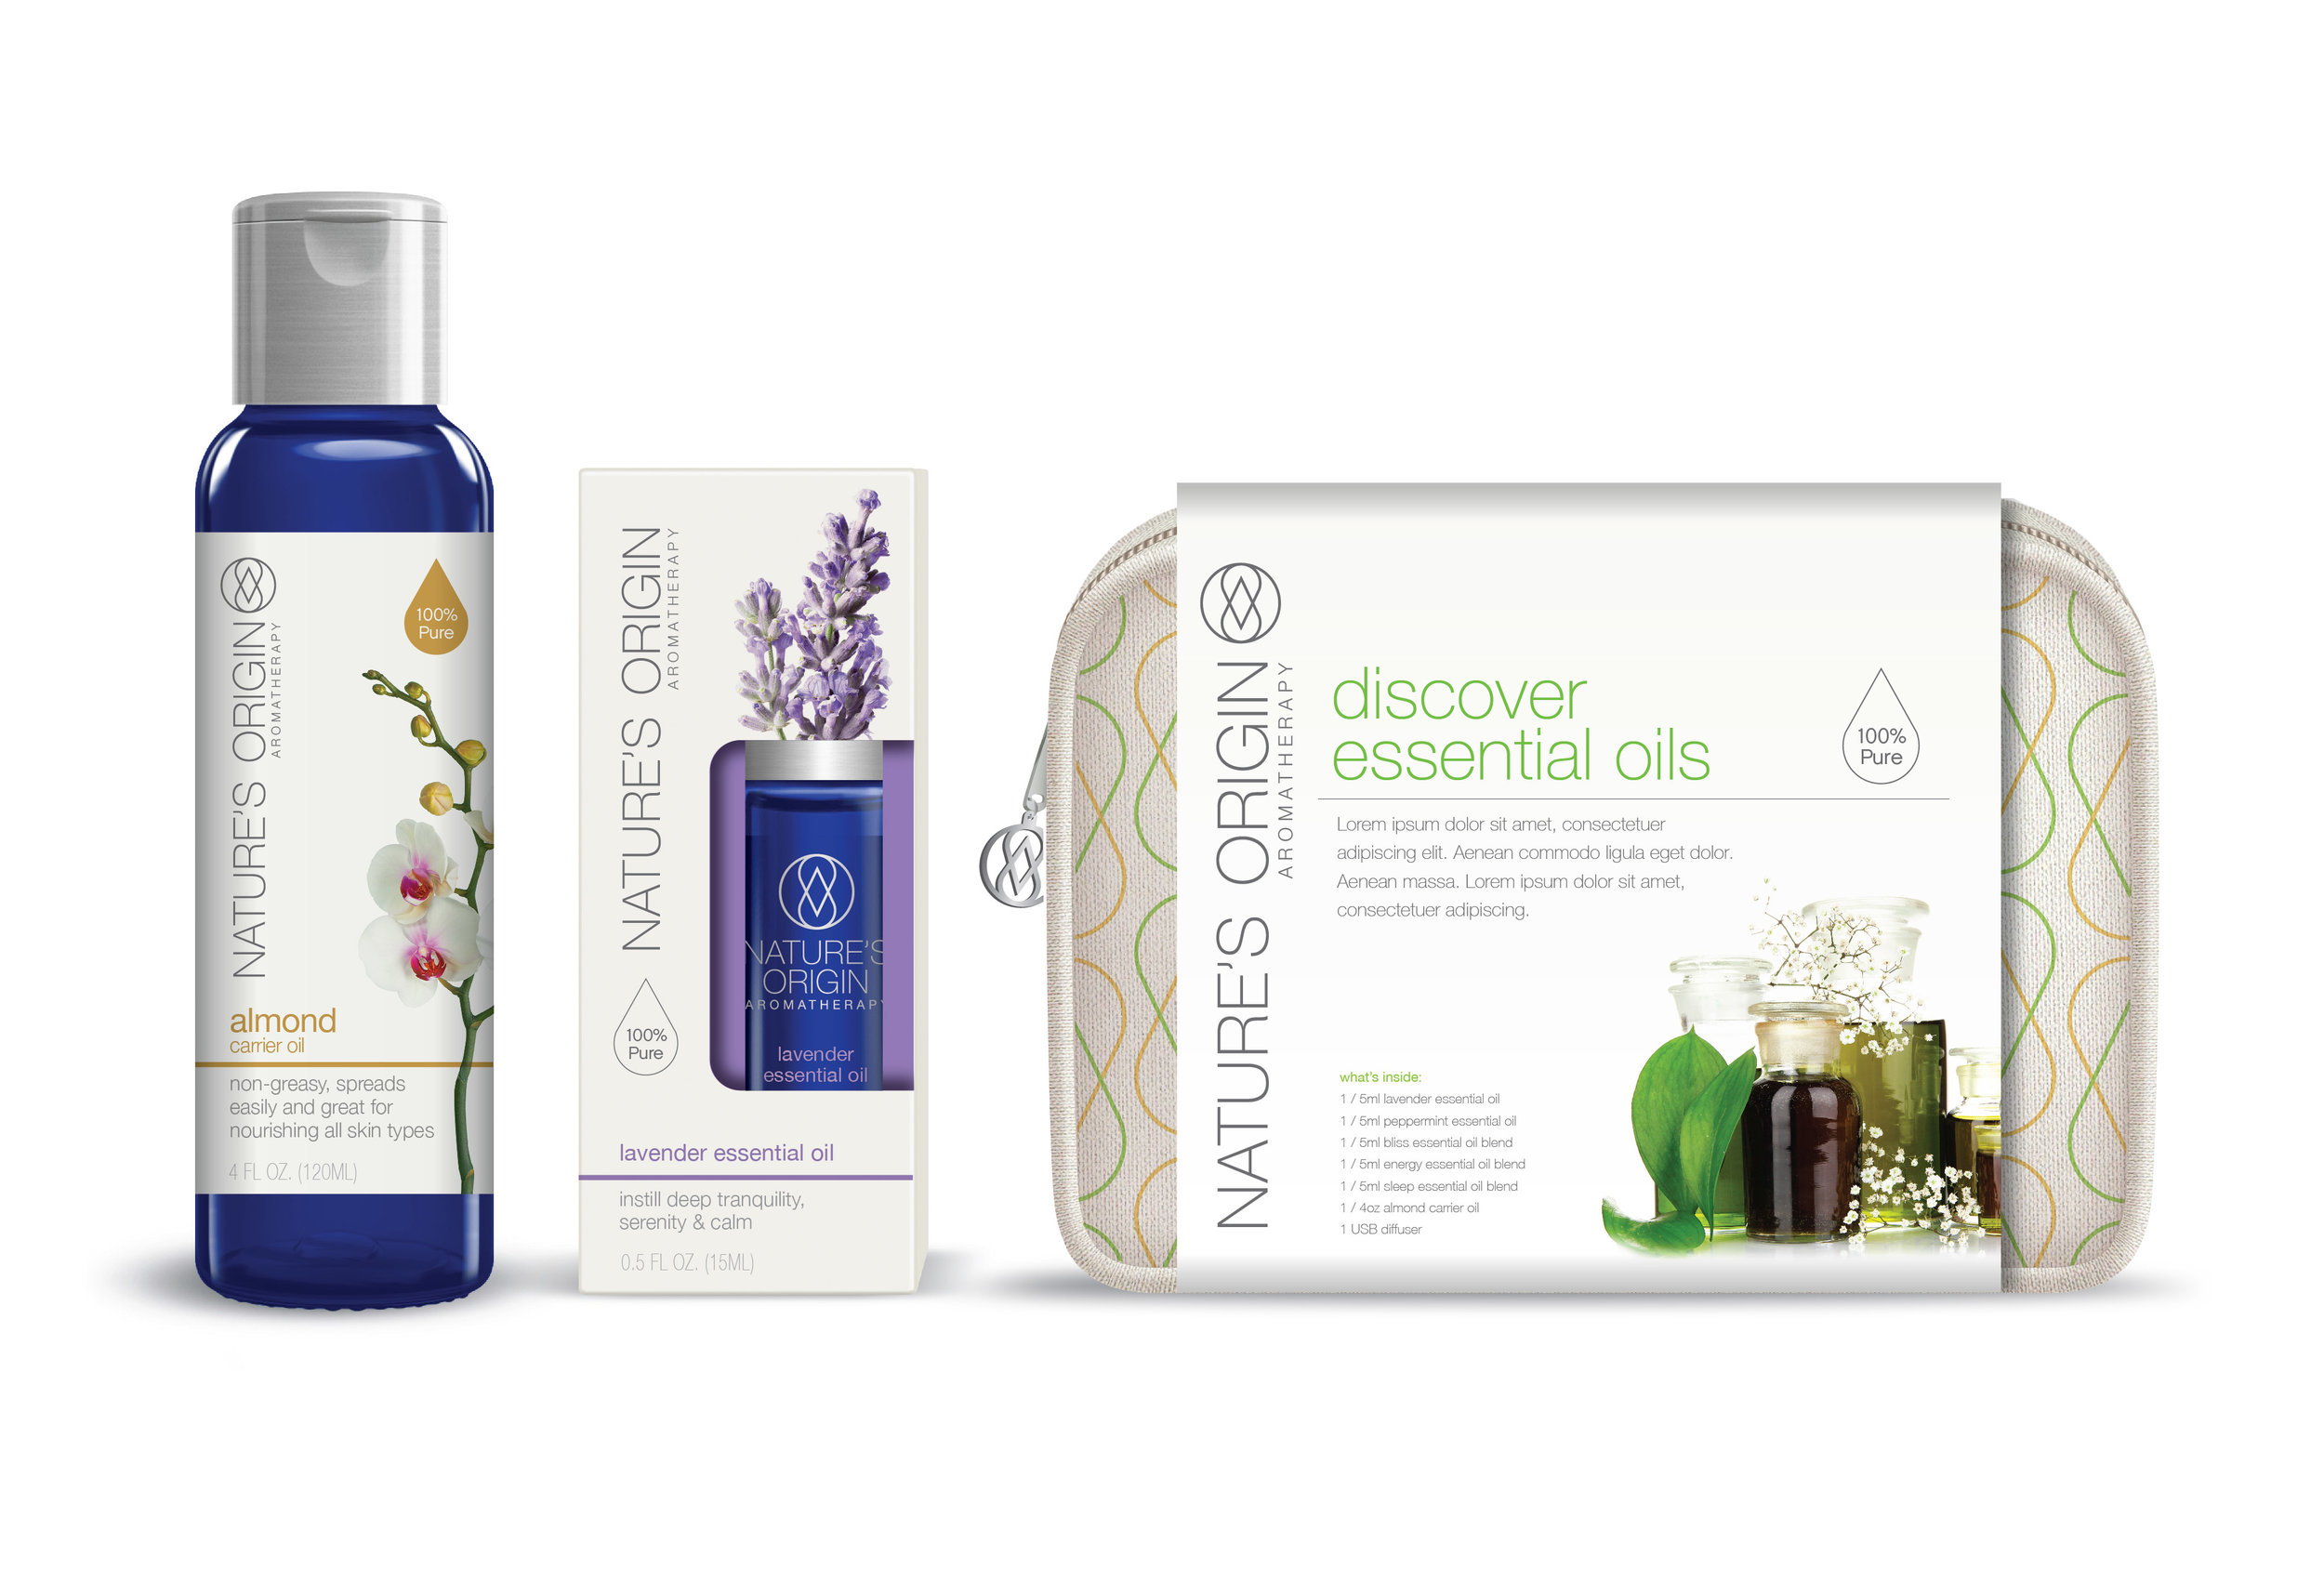 Essential oils derived from the finest ingredients, sourced from locations around the world and produced in a manner that keeps our planet healthy.